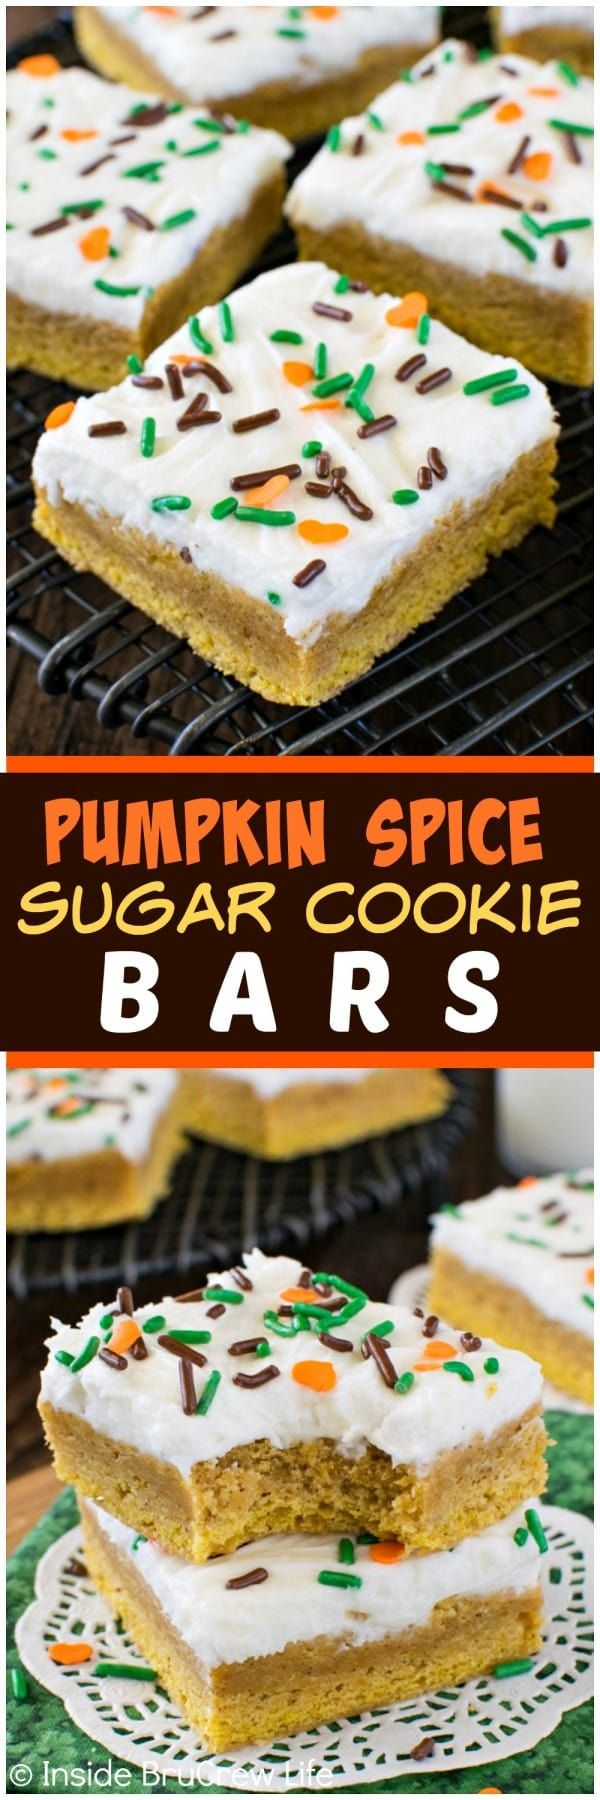 Pumpkin Spice Sugar Cookie Bars - these easy bar cookies have a sweet pumpkin taste and a creamy frosting. Great fall dessert recipe!